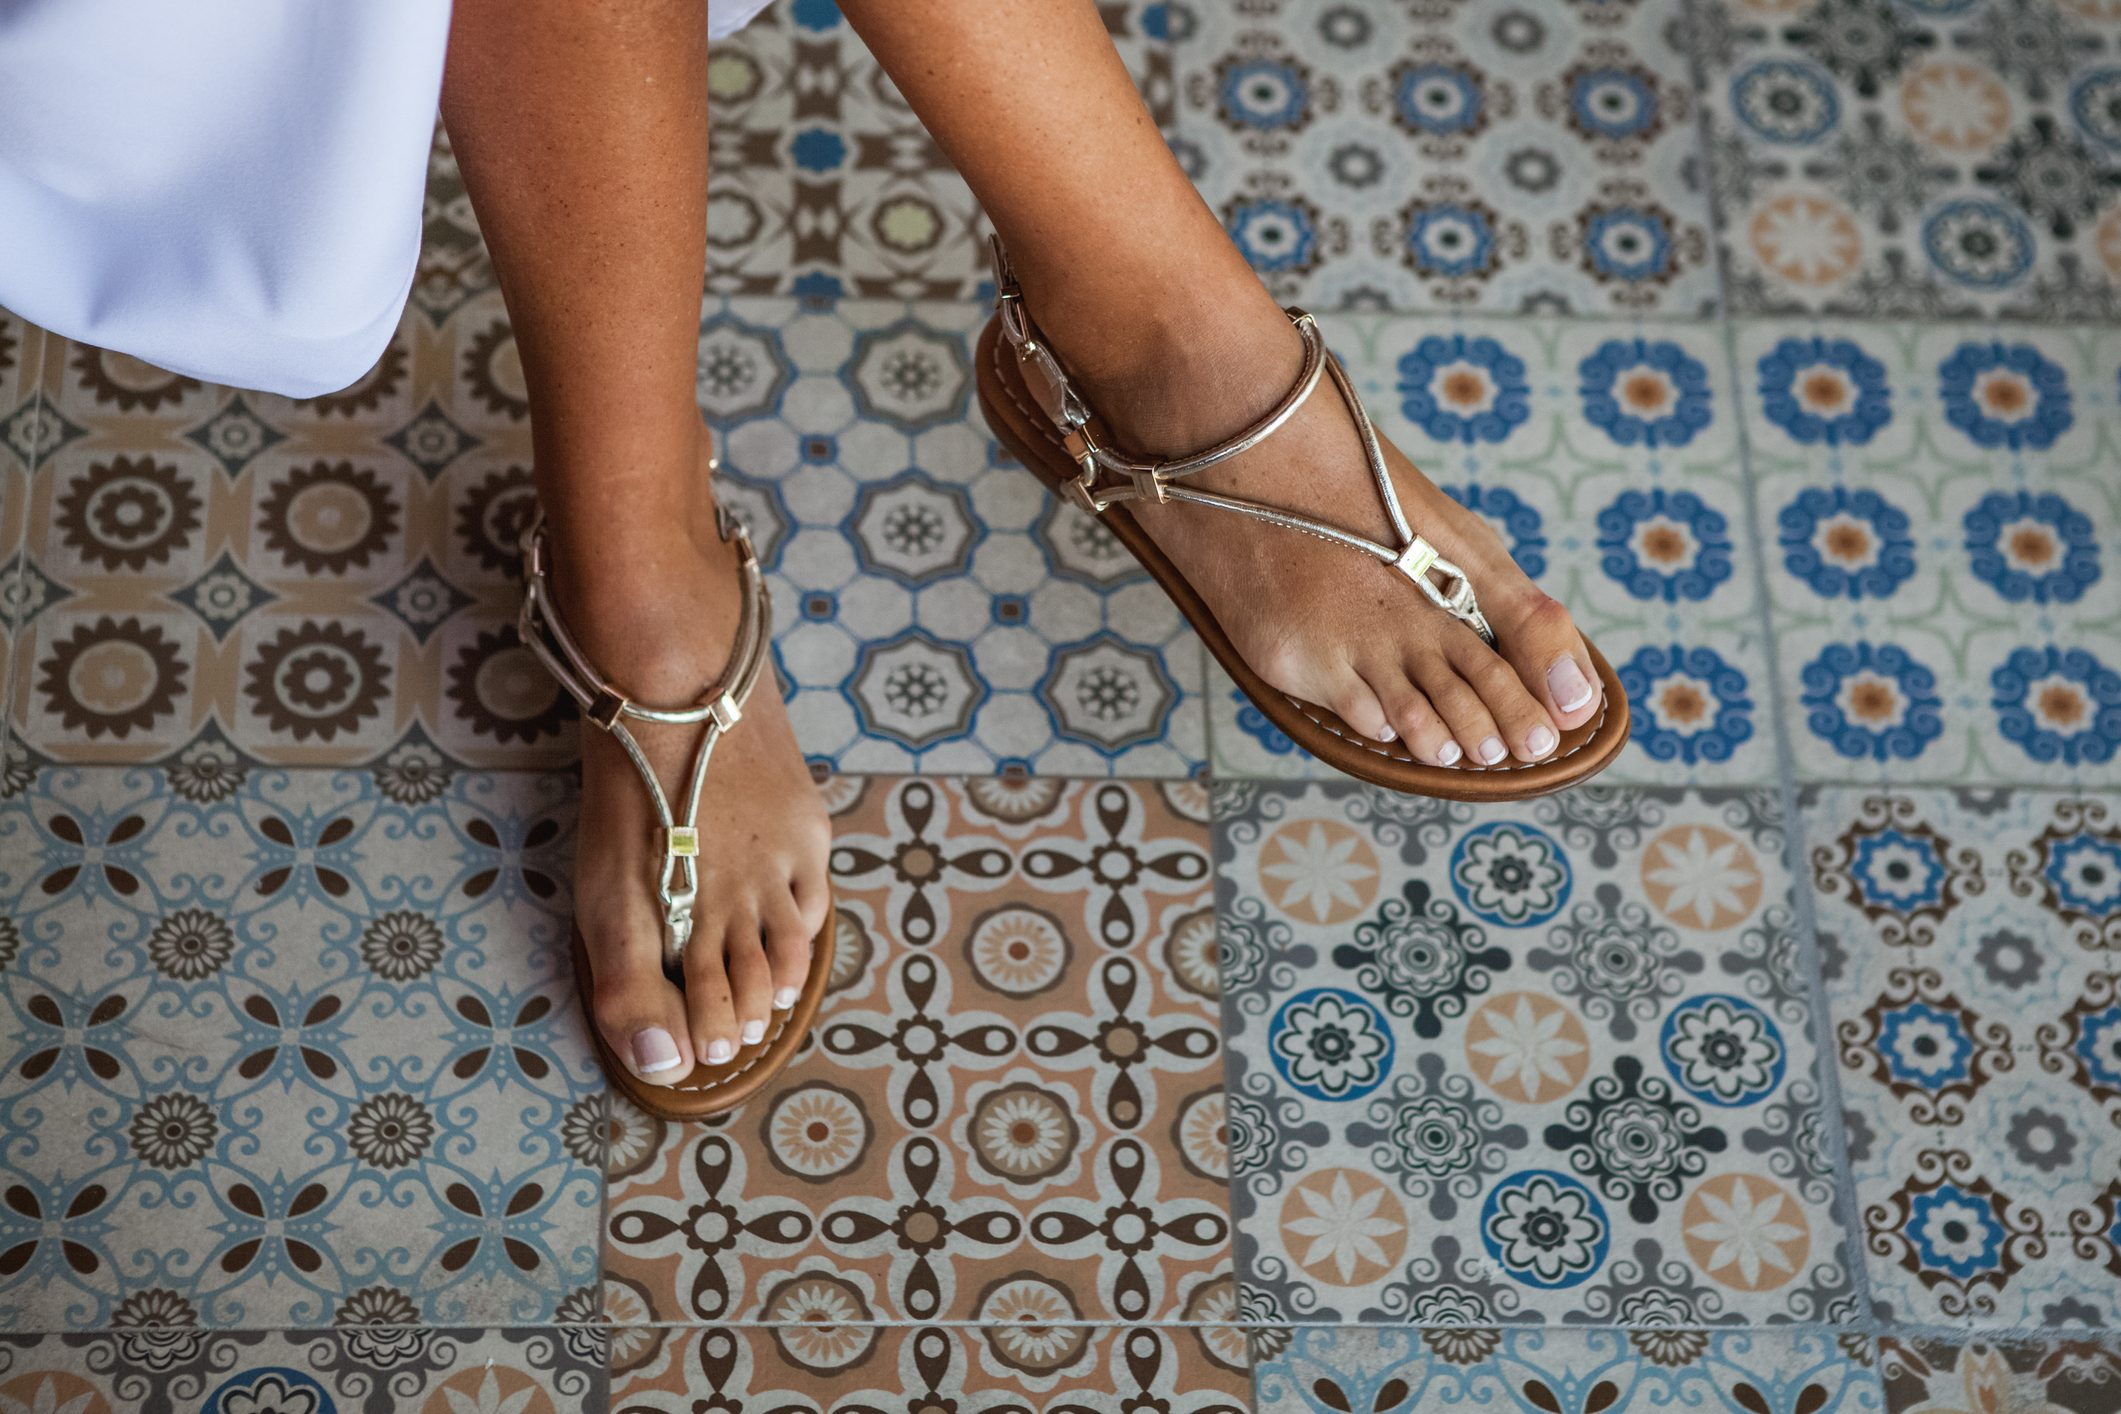 close up of sandals on woman's feet